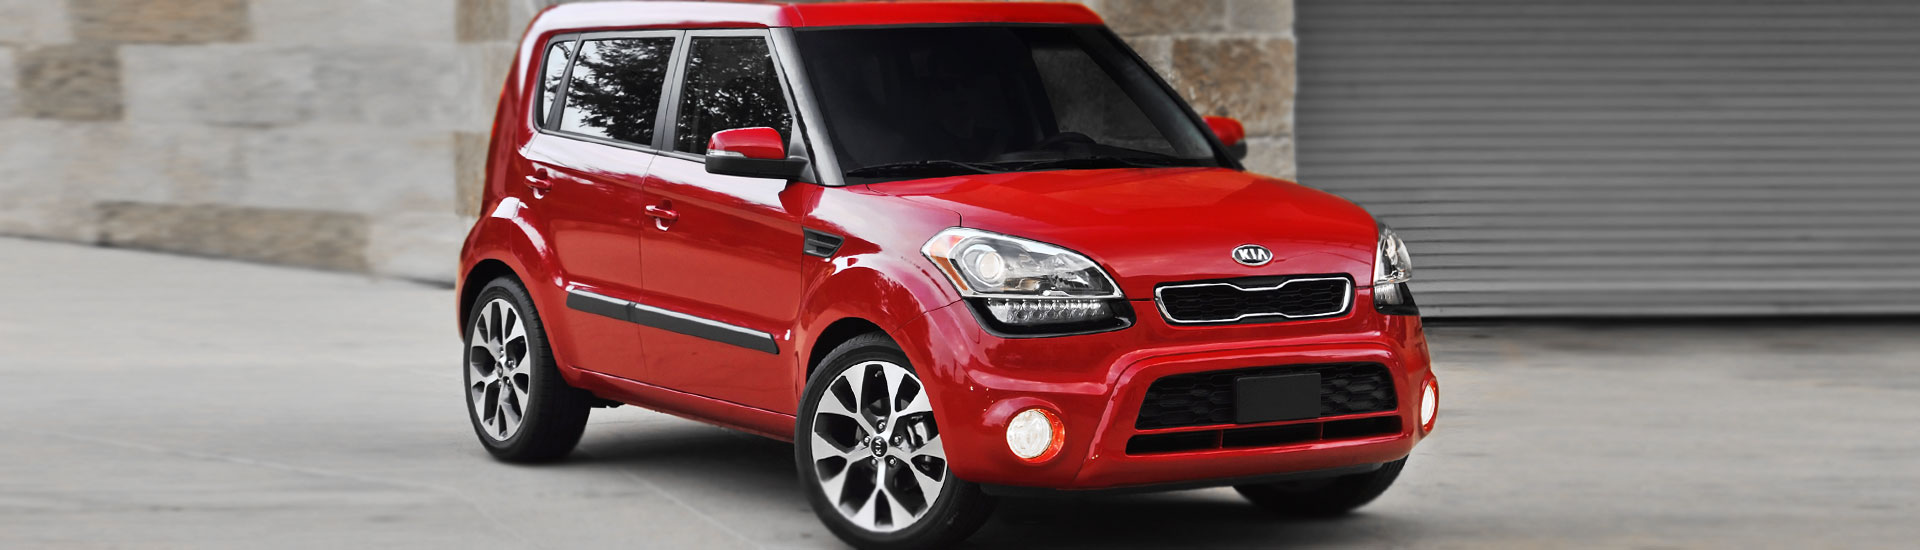 Kia Soul Window Tint Kit Diy Precut Kia Soul Window Tint